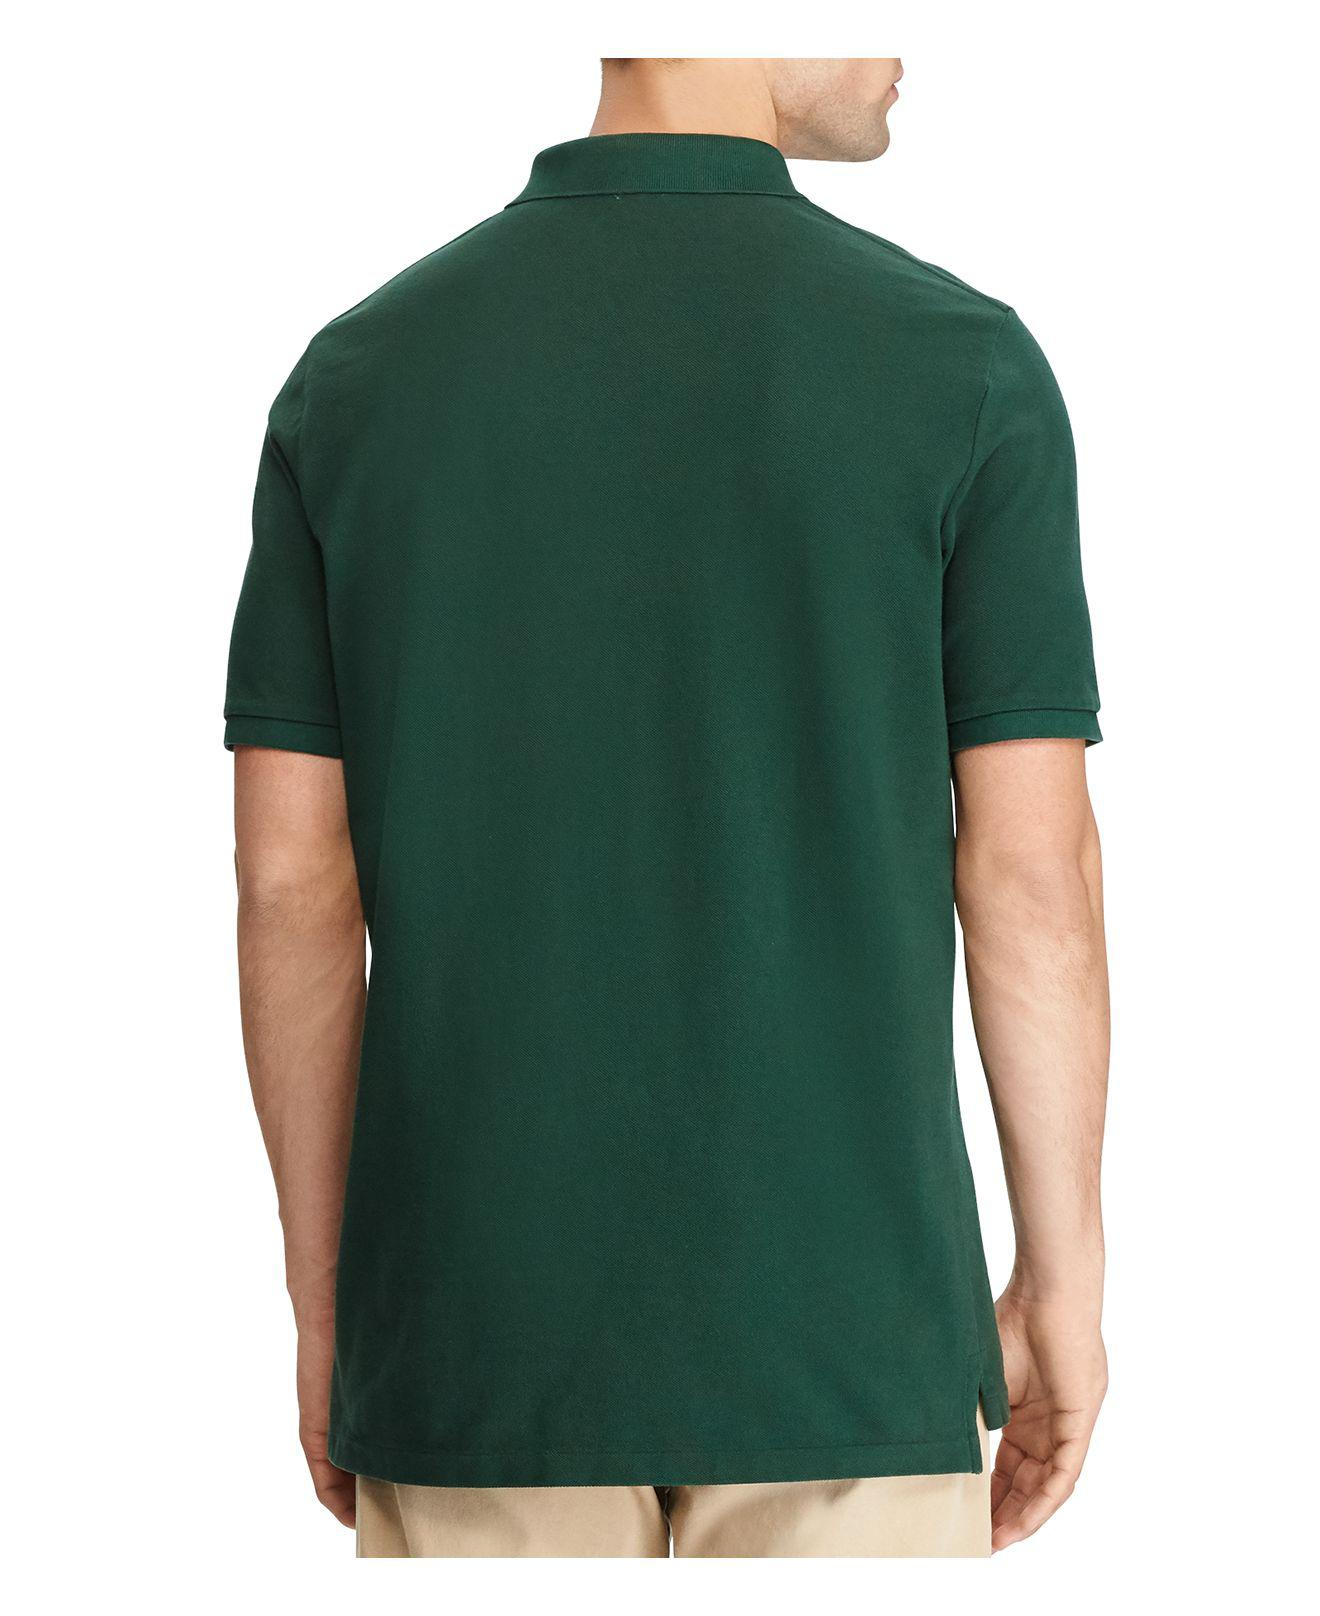 ddac1ffc Polo Ralph Lauren Weathered Mesh Classic Fit Polo Shirt in Green for ...